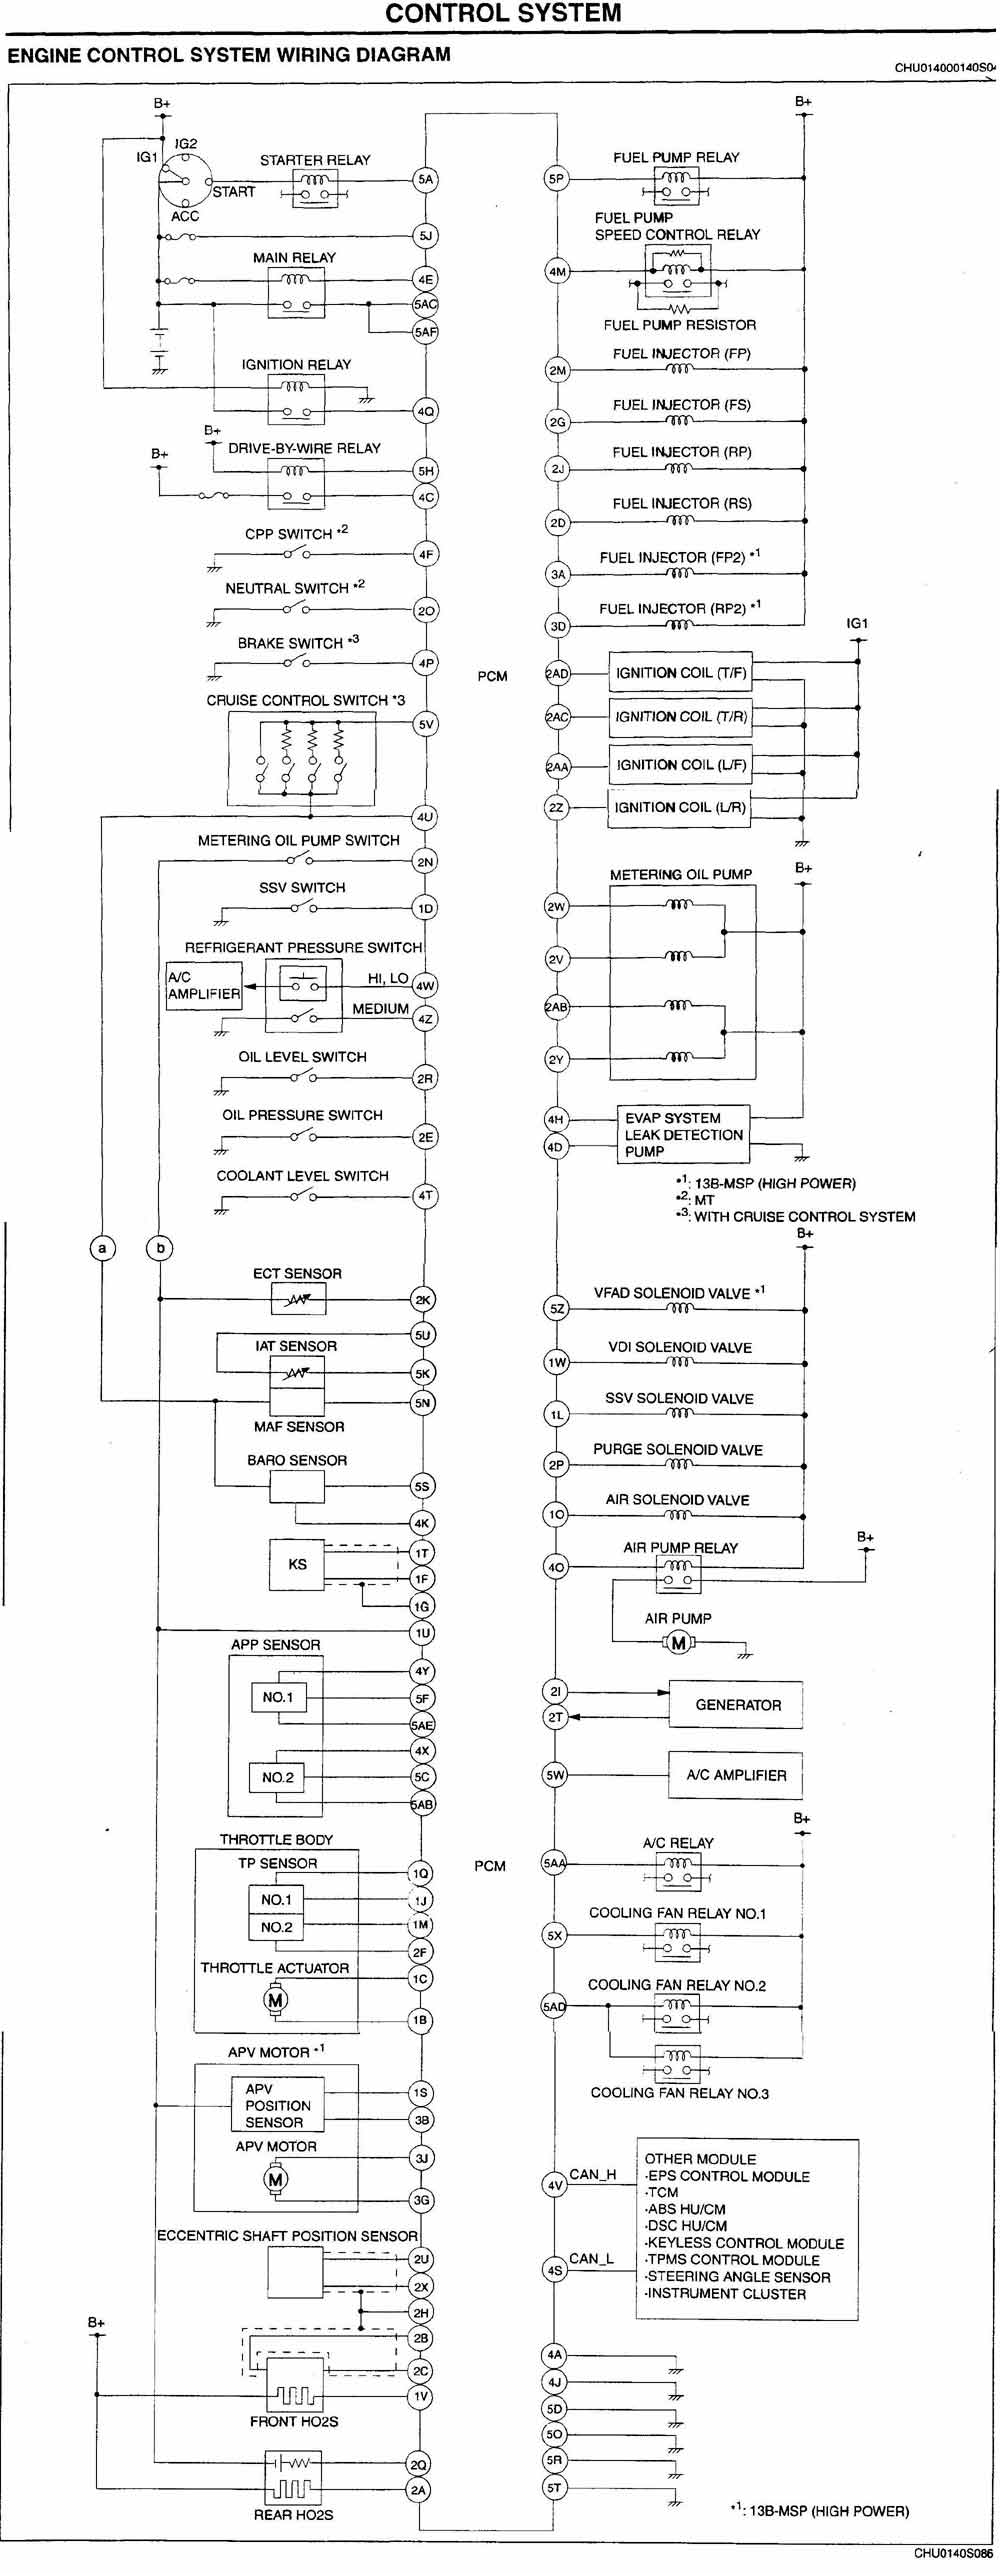 medium resolution of  need ecu connector pin diagram pcm pin out jpg